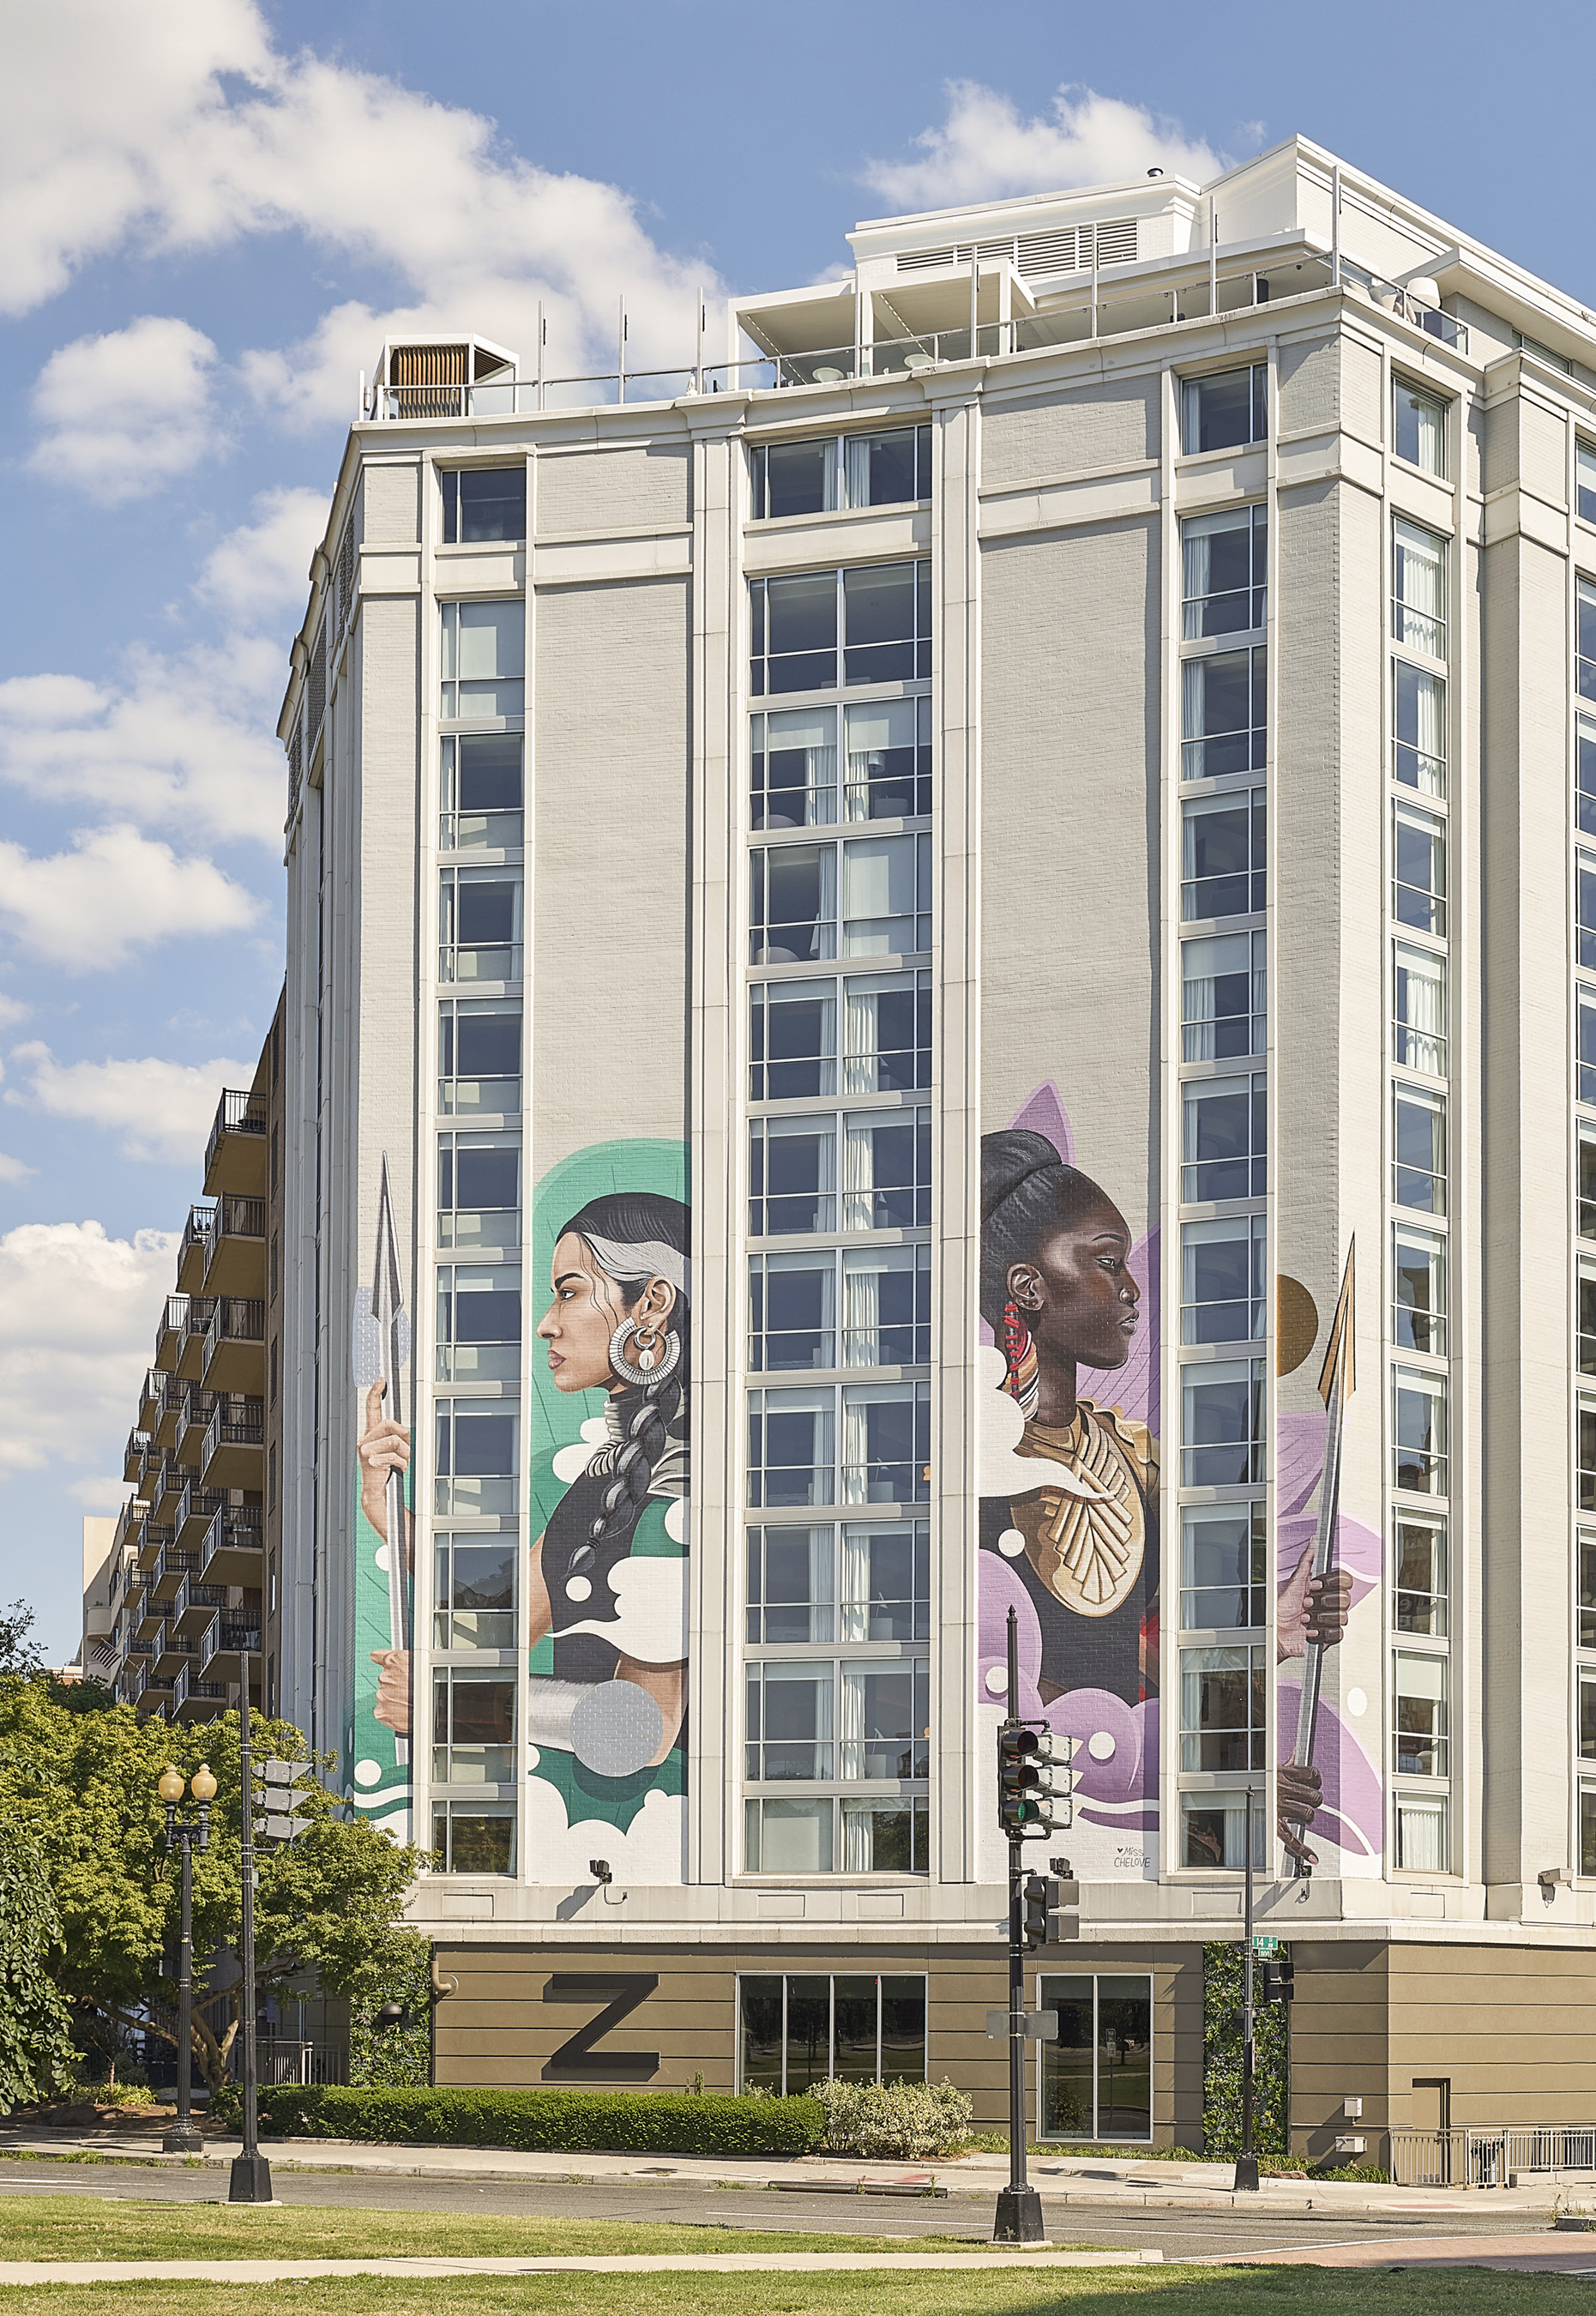 A seven-story-tall mural by MISS CHELOVE, fierce yet curious warrior-sentinel women guard Hotel Zena. Photo Credit: Mike Schwartz Photography